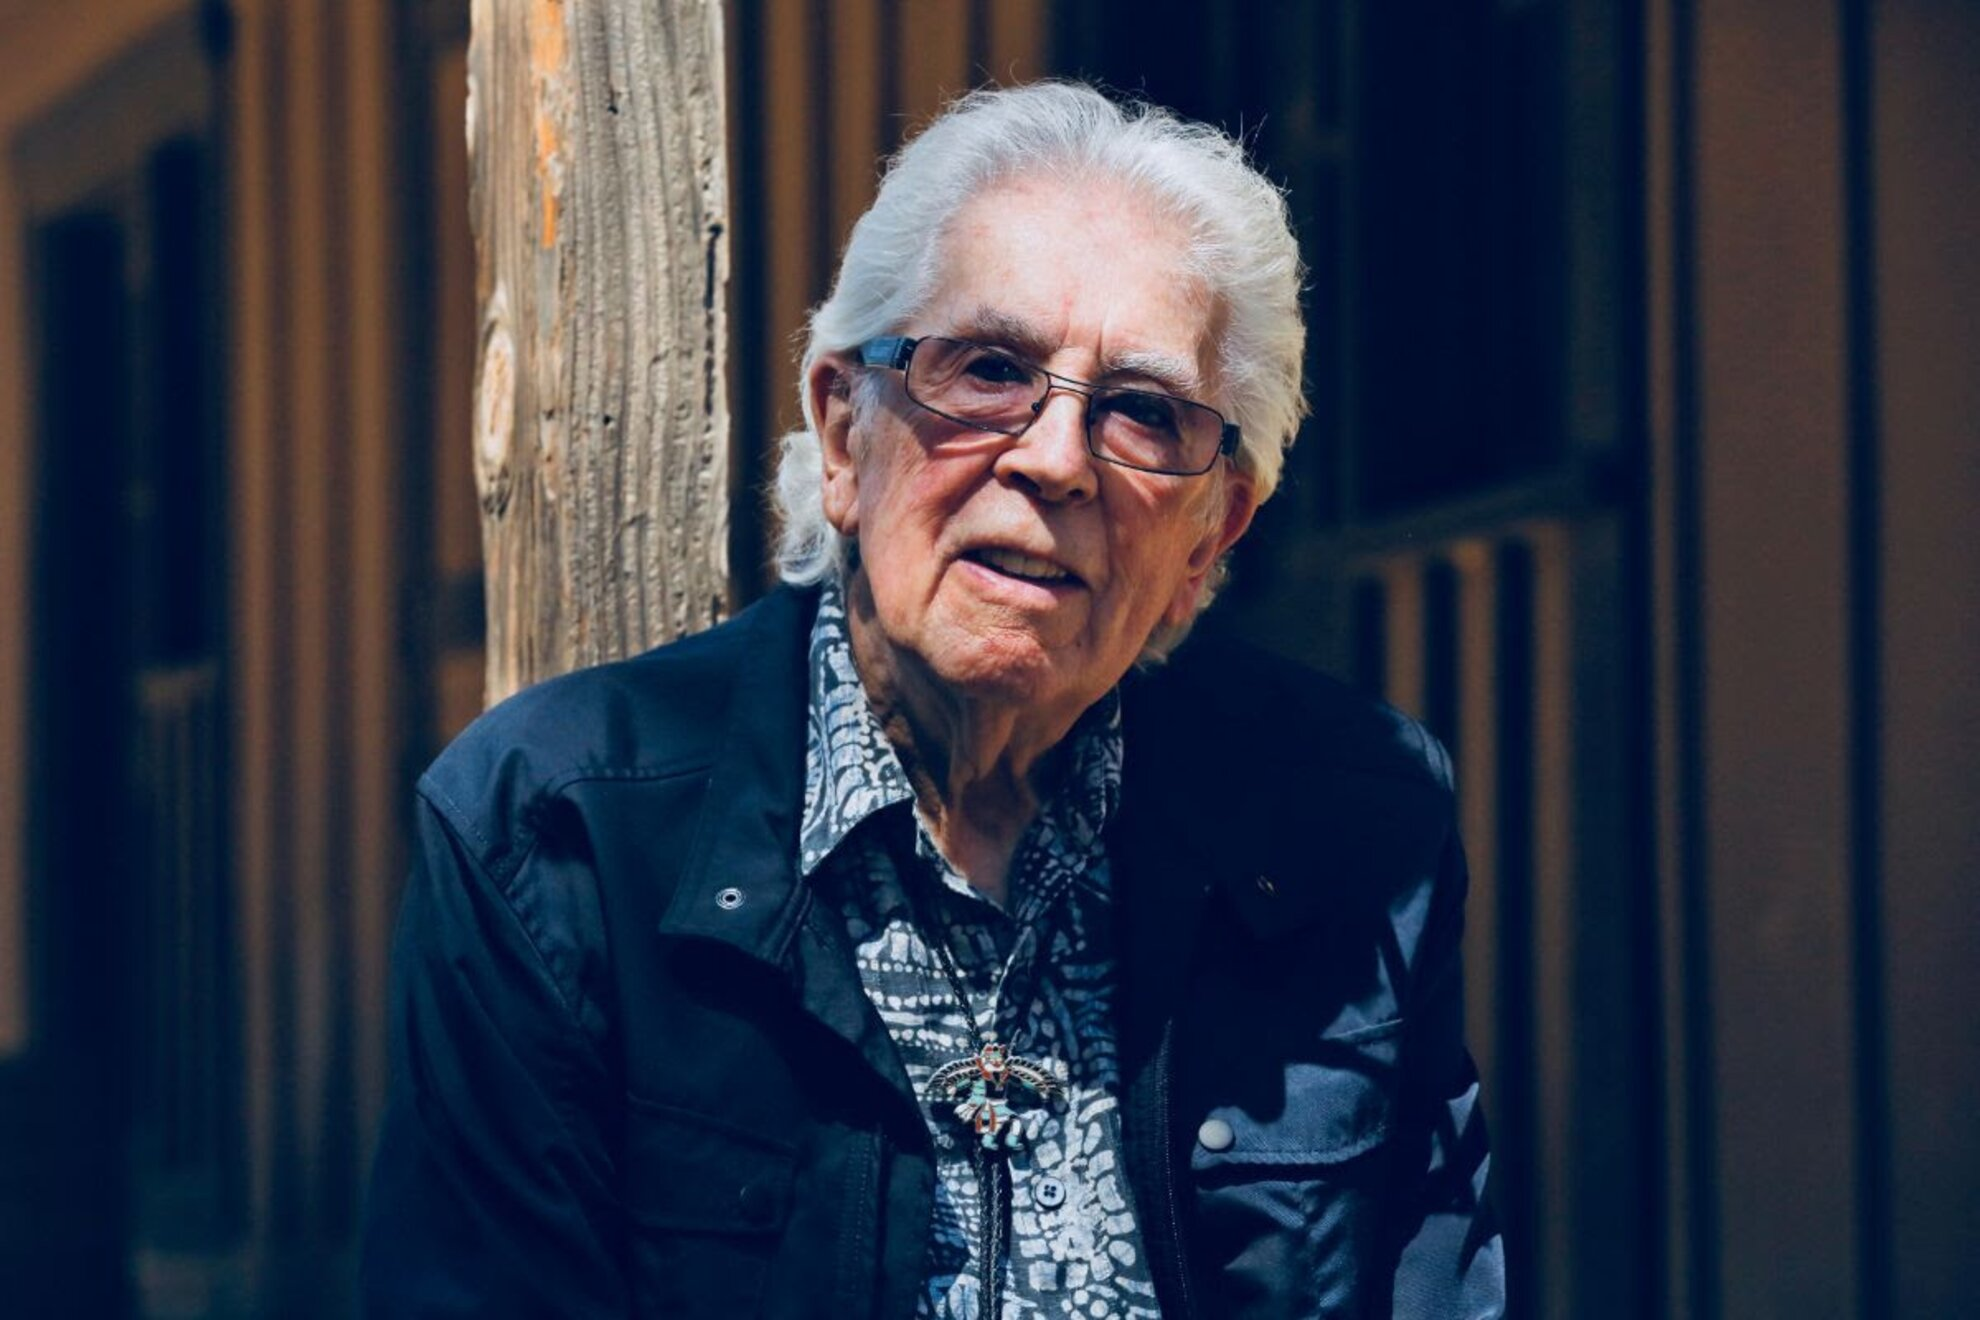 John Mayall (UK) - 85th Anniversary Tour